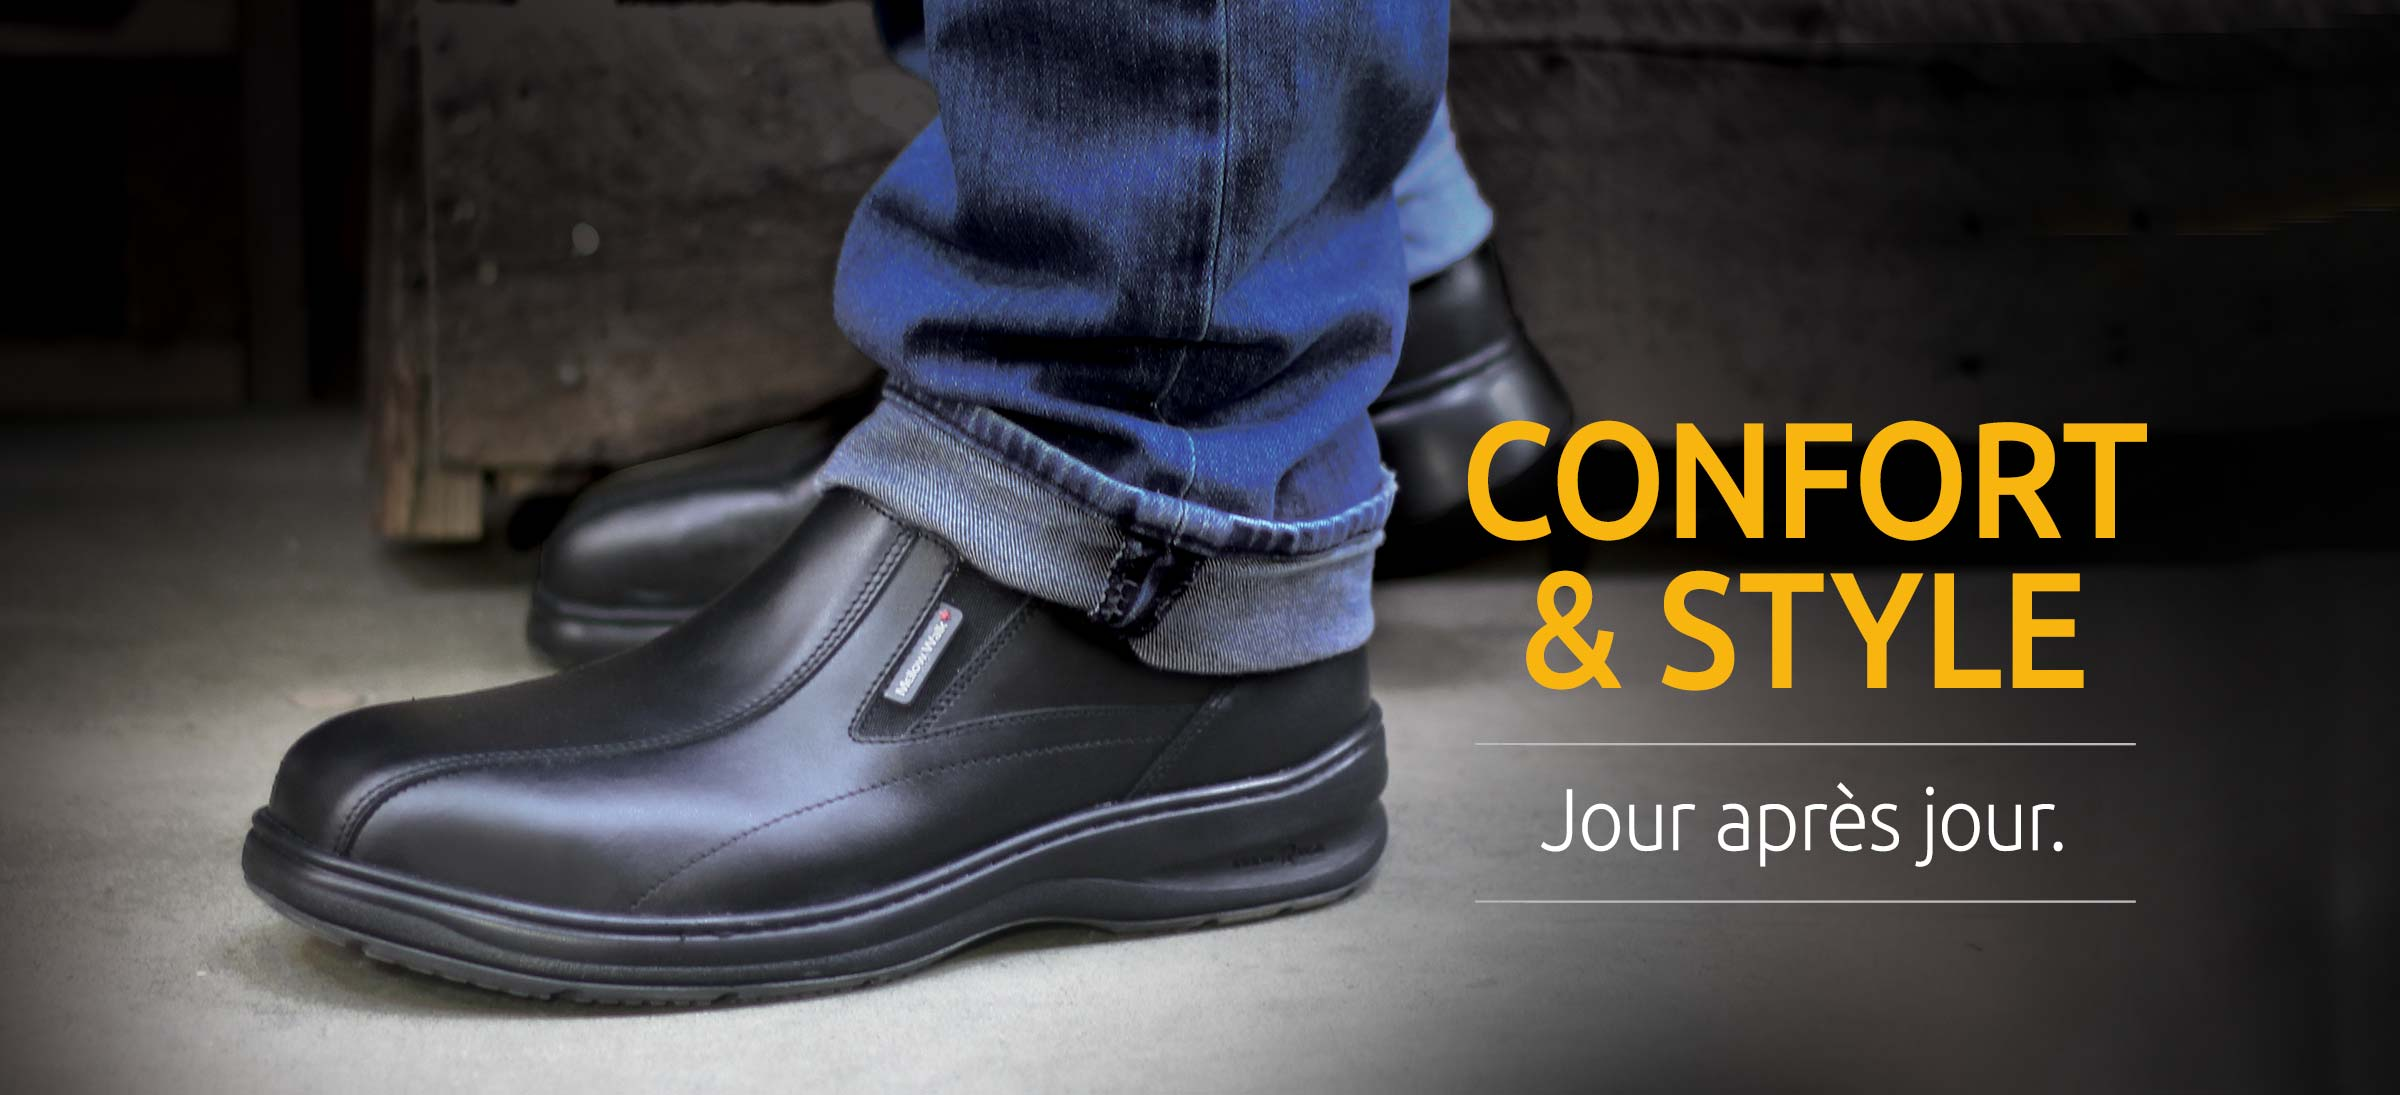 Confort & Style